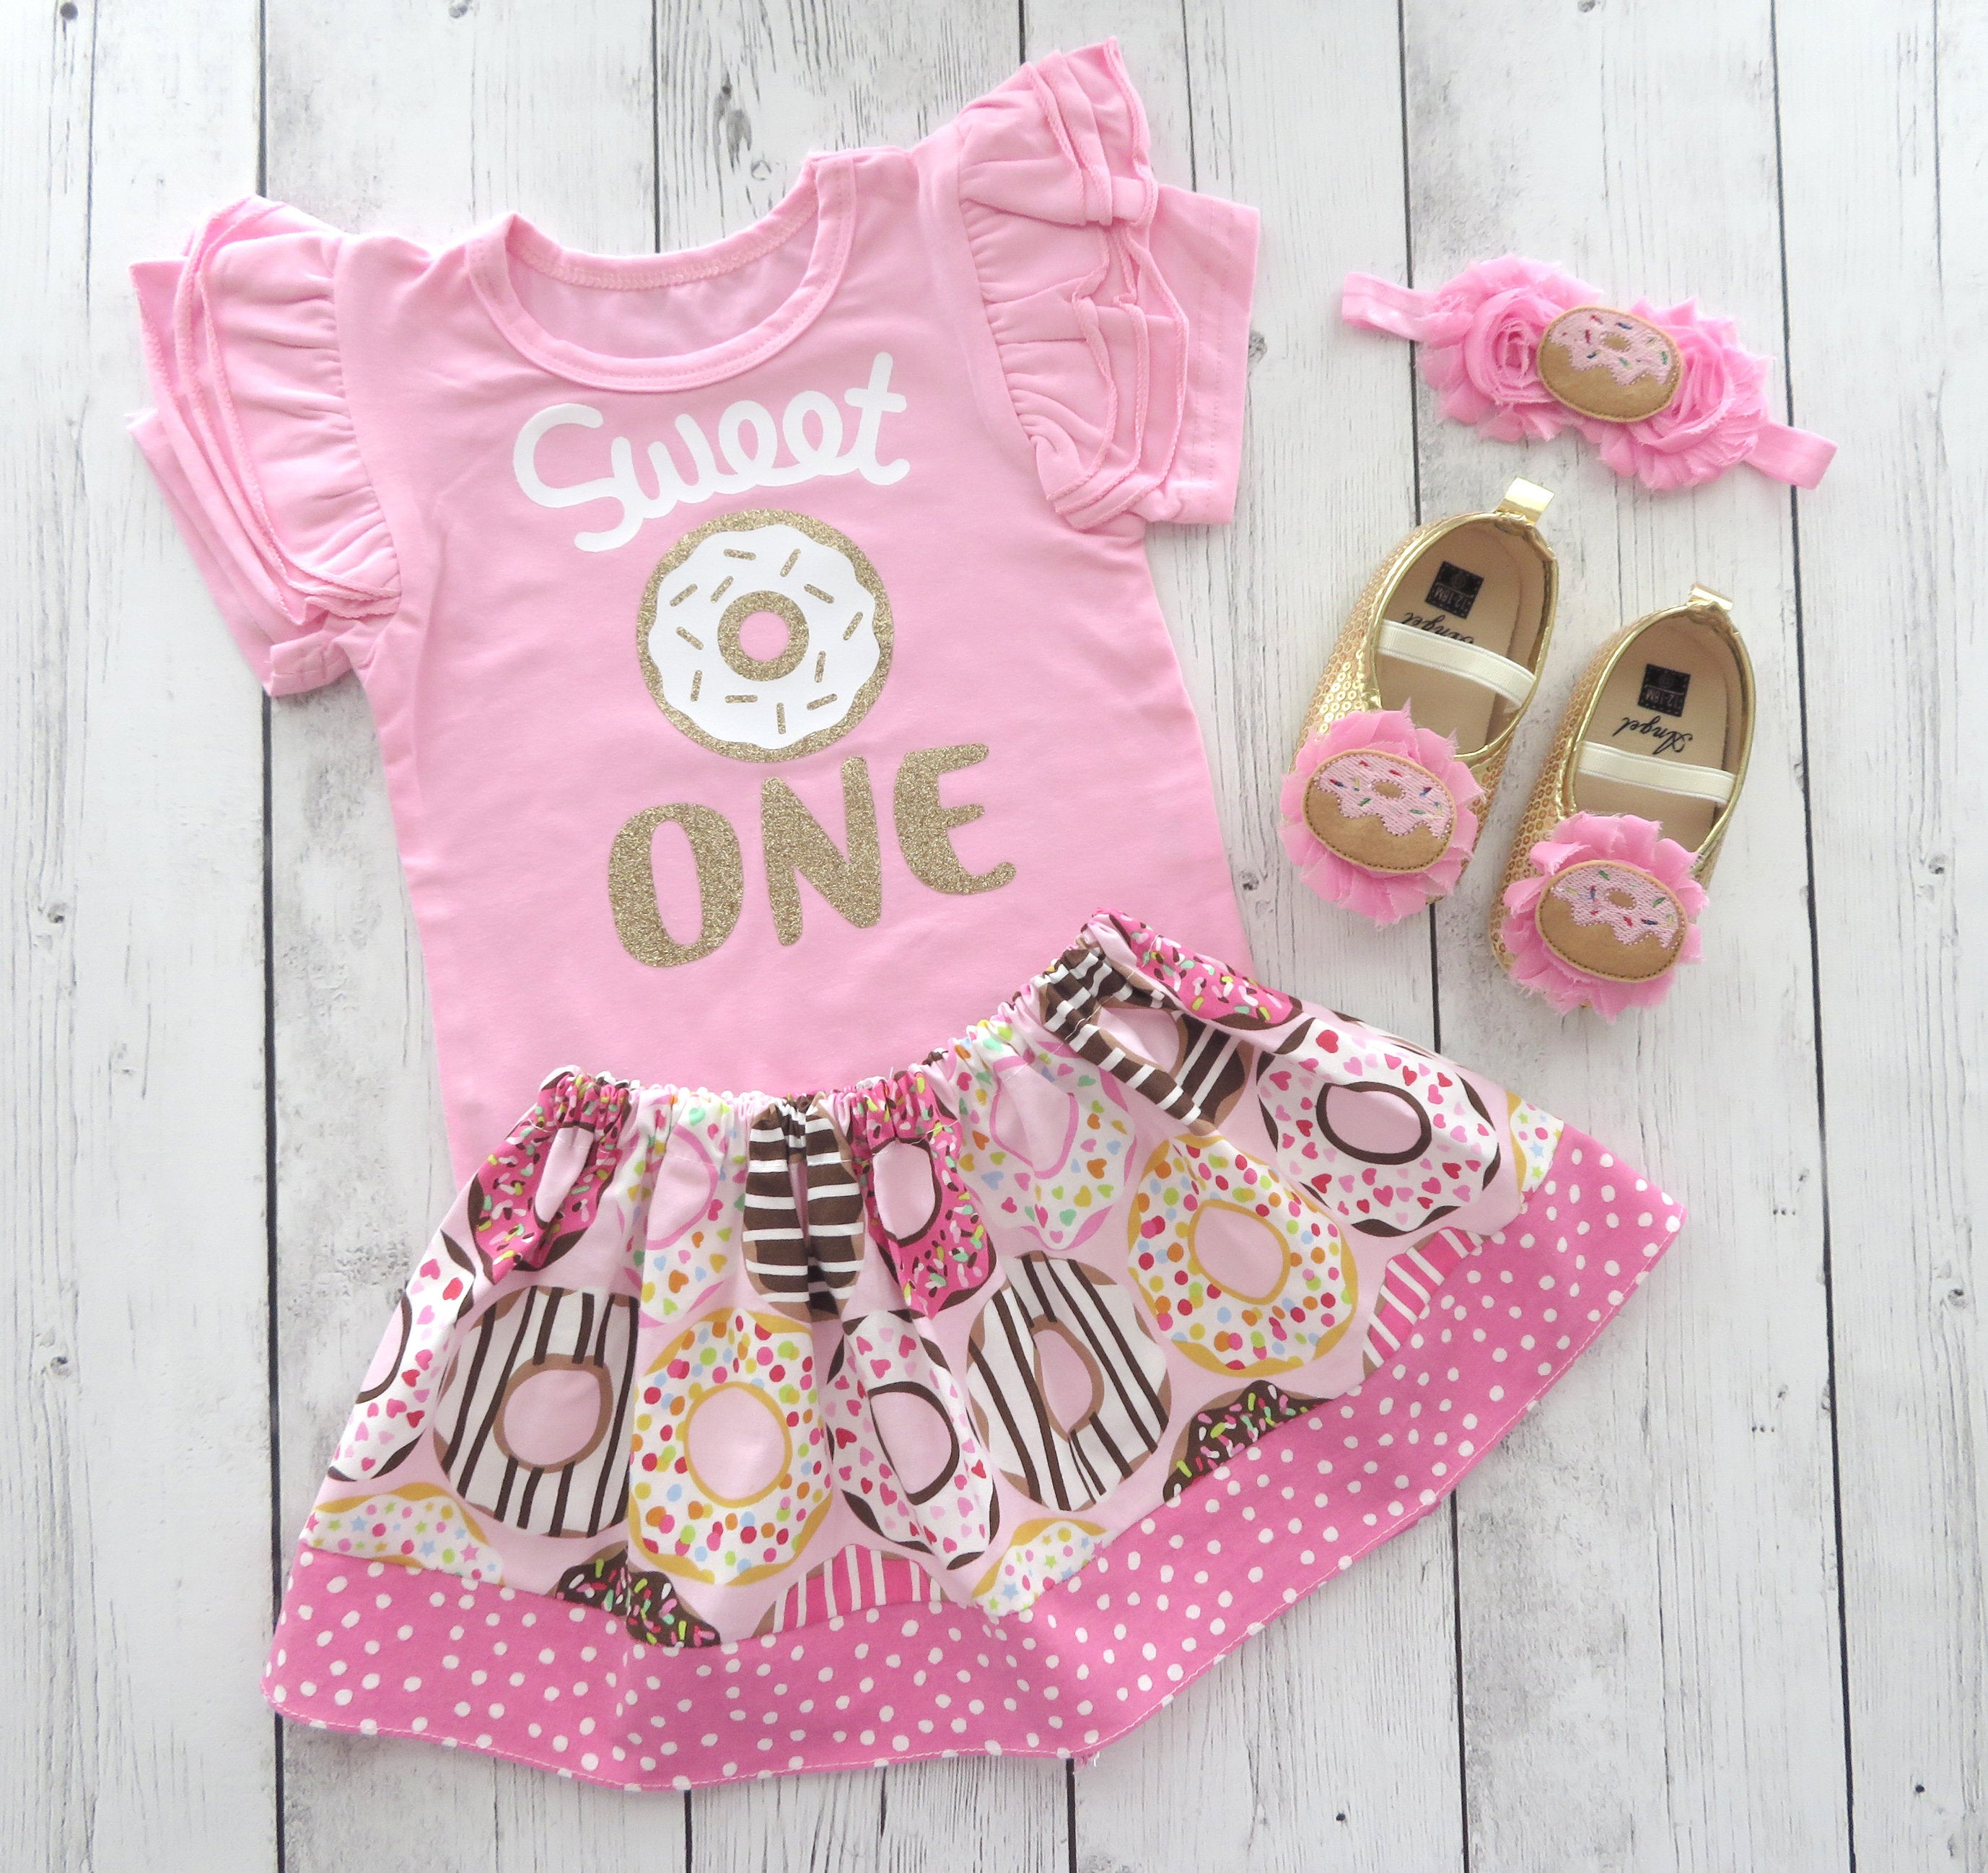 Donut First Birthday Outfit for Girl in Pink and Gold - Sweet One Birthday, Donut Grow Up, Donut 1st bday girl, donut shoes, pink donut bday